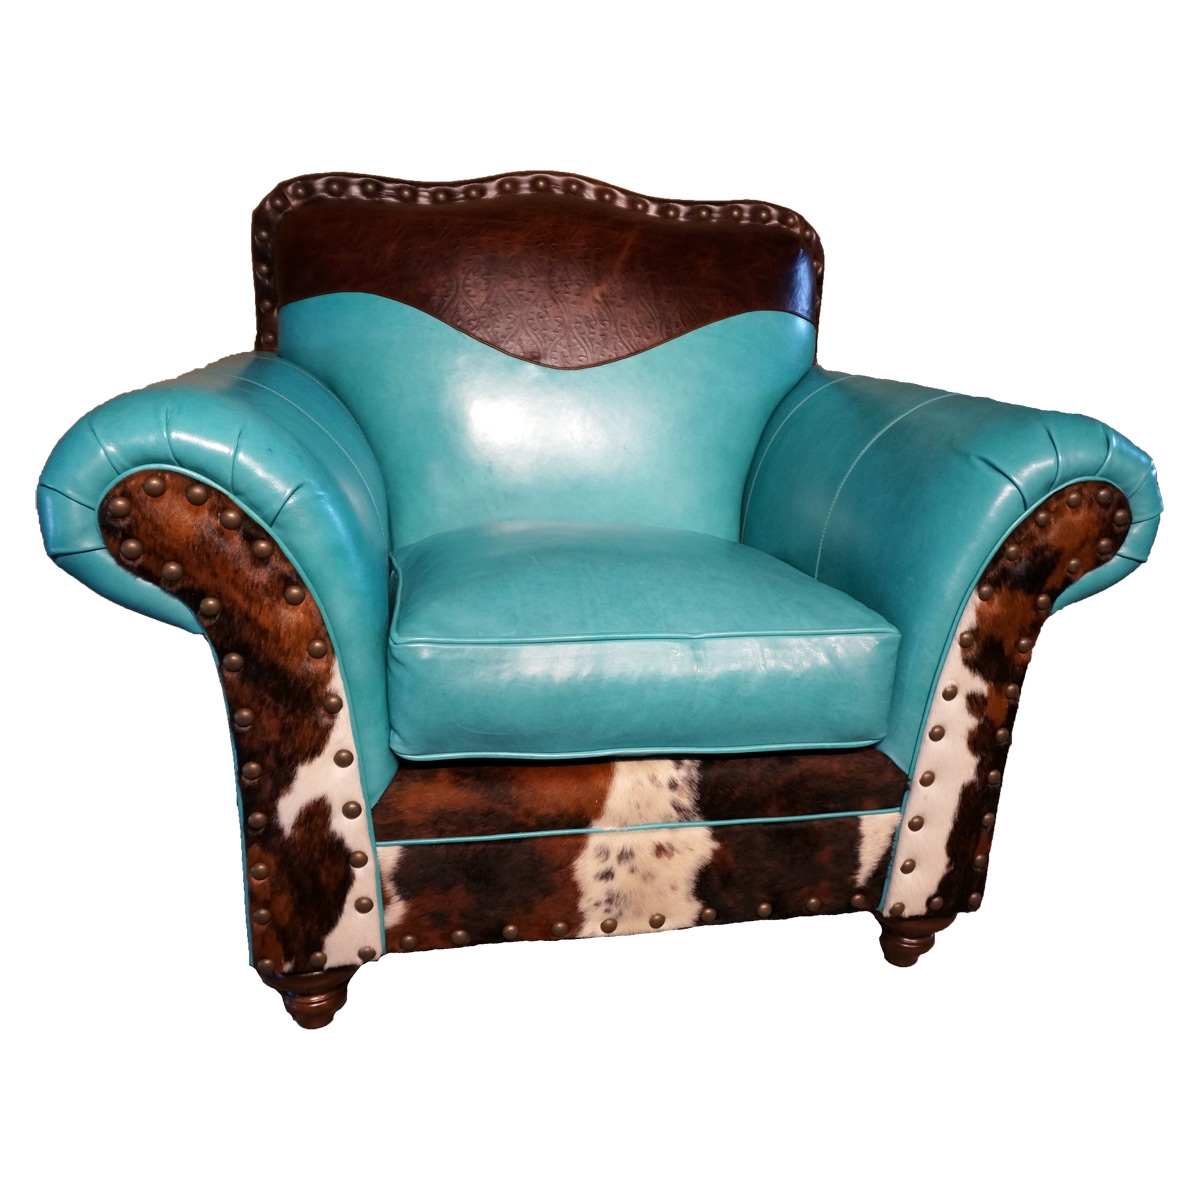 Turquoise Leather & Cowhide Club Chair